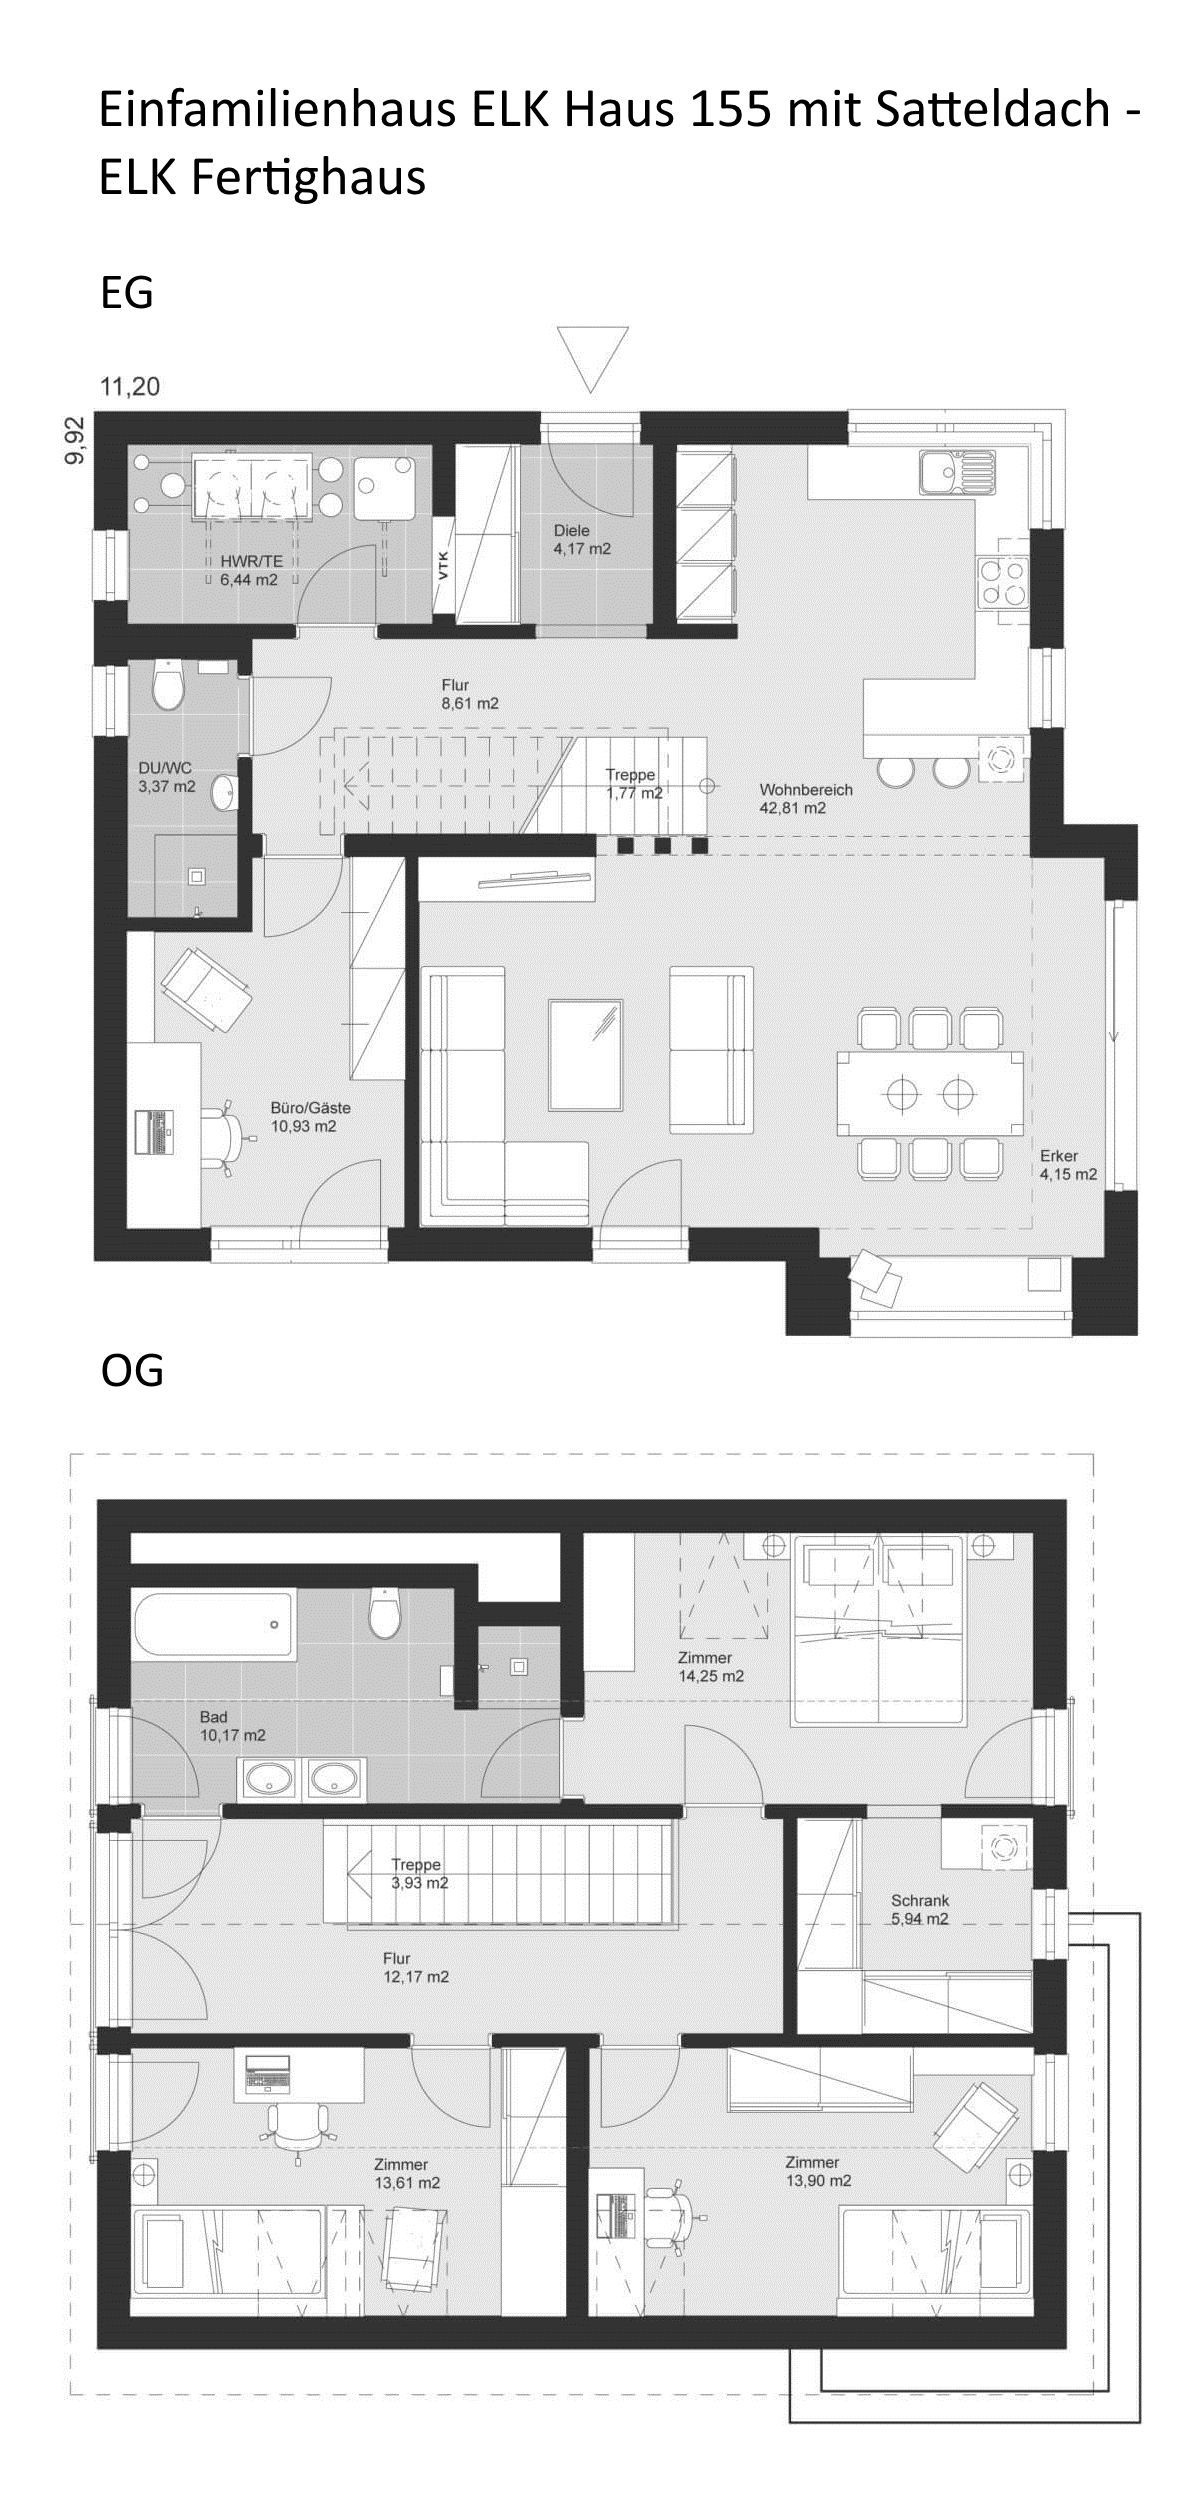 grundriss einfamilienhaus landhausstil mit satteldach architektur 5 zimmer 156 qm gerade. Black Bedroom Furniture Sets. Home Design Ideas